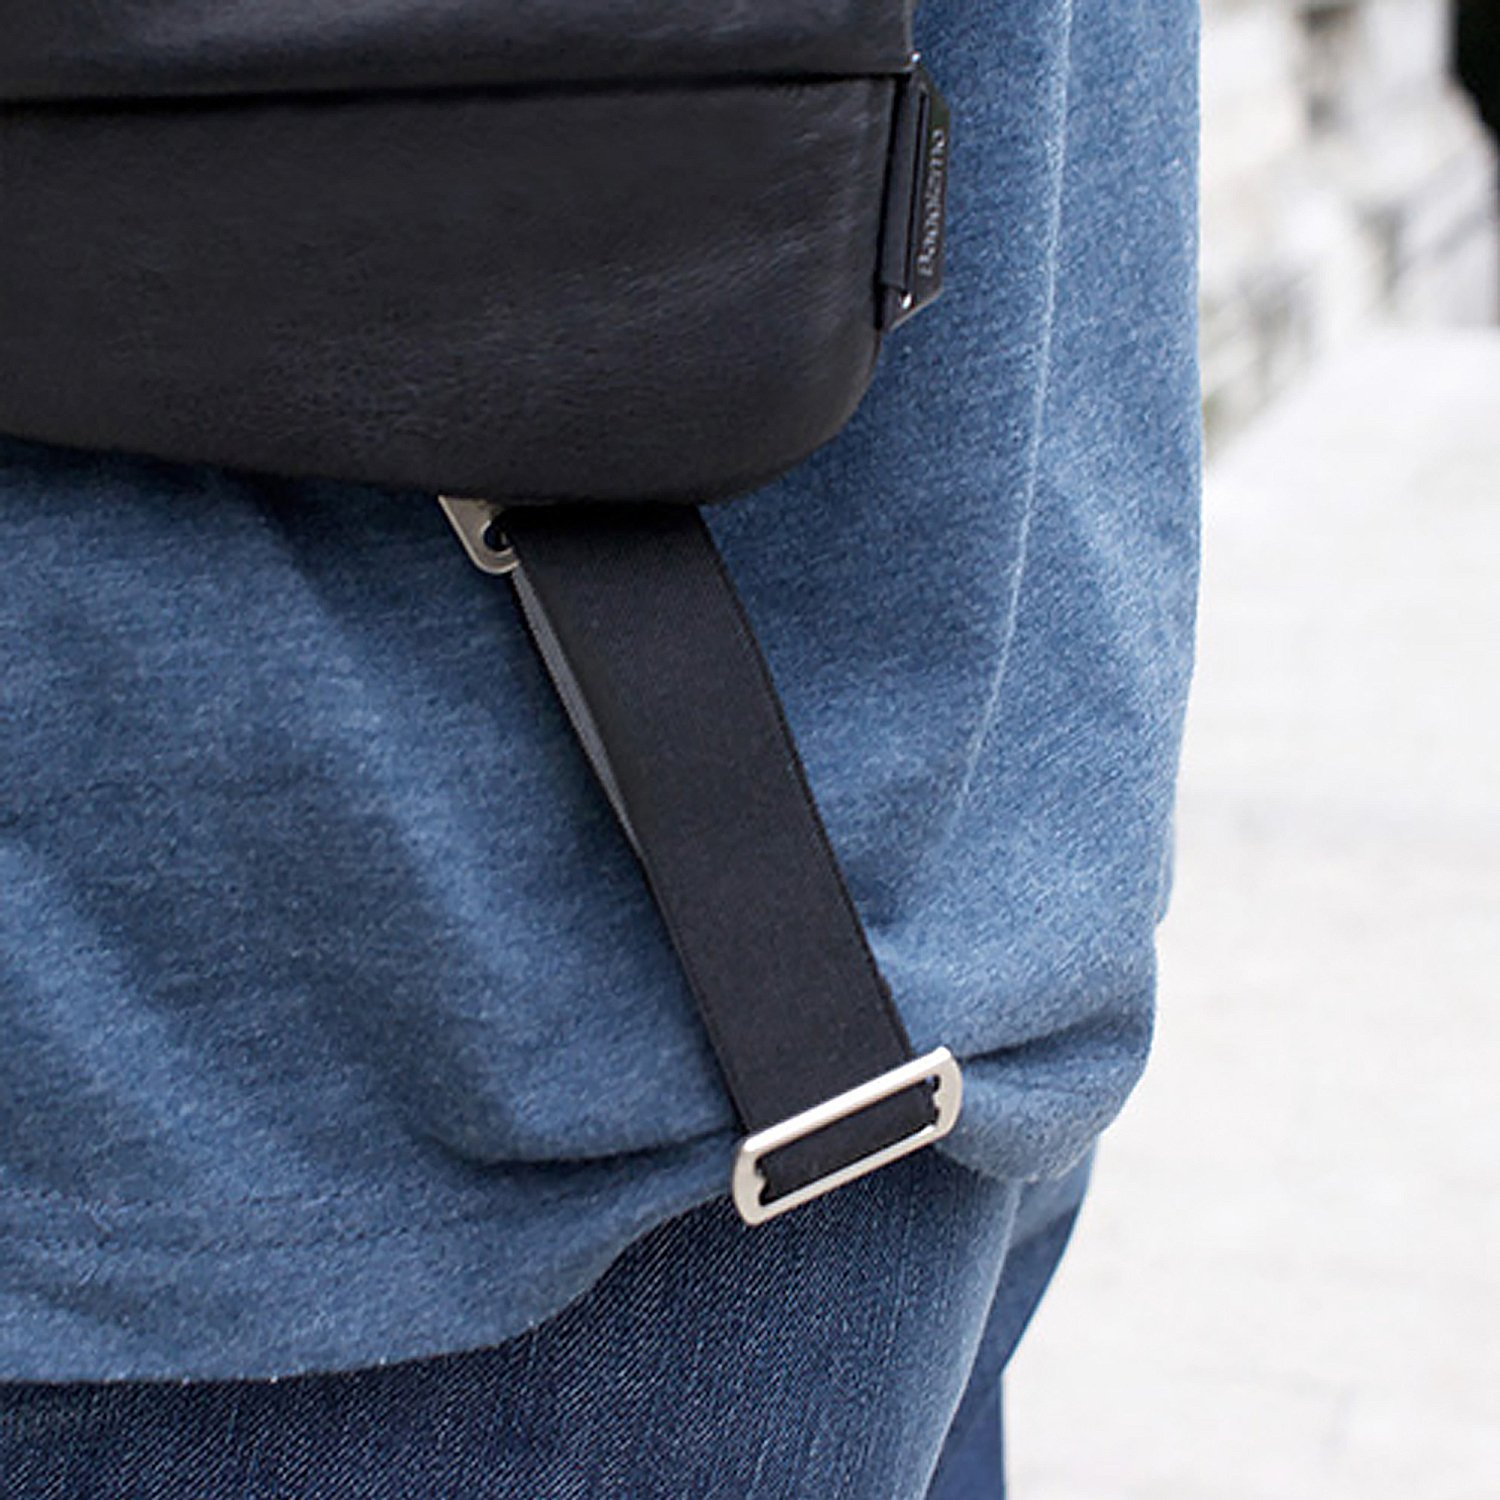 Crossbody bag attached with special add-on buckle